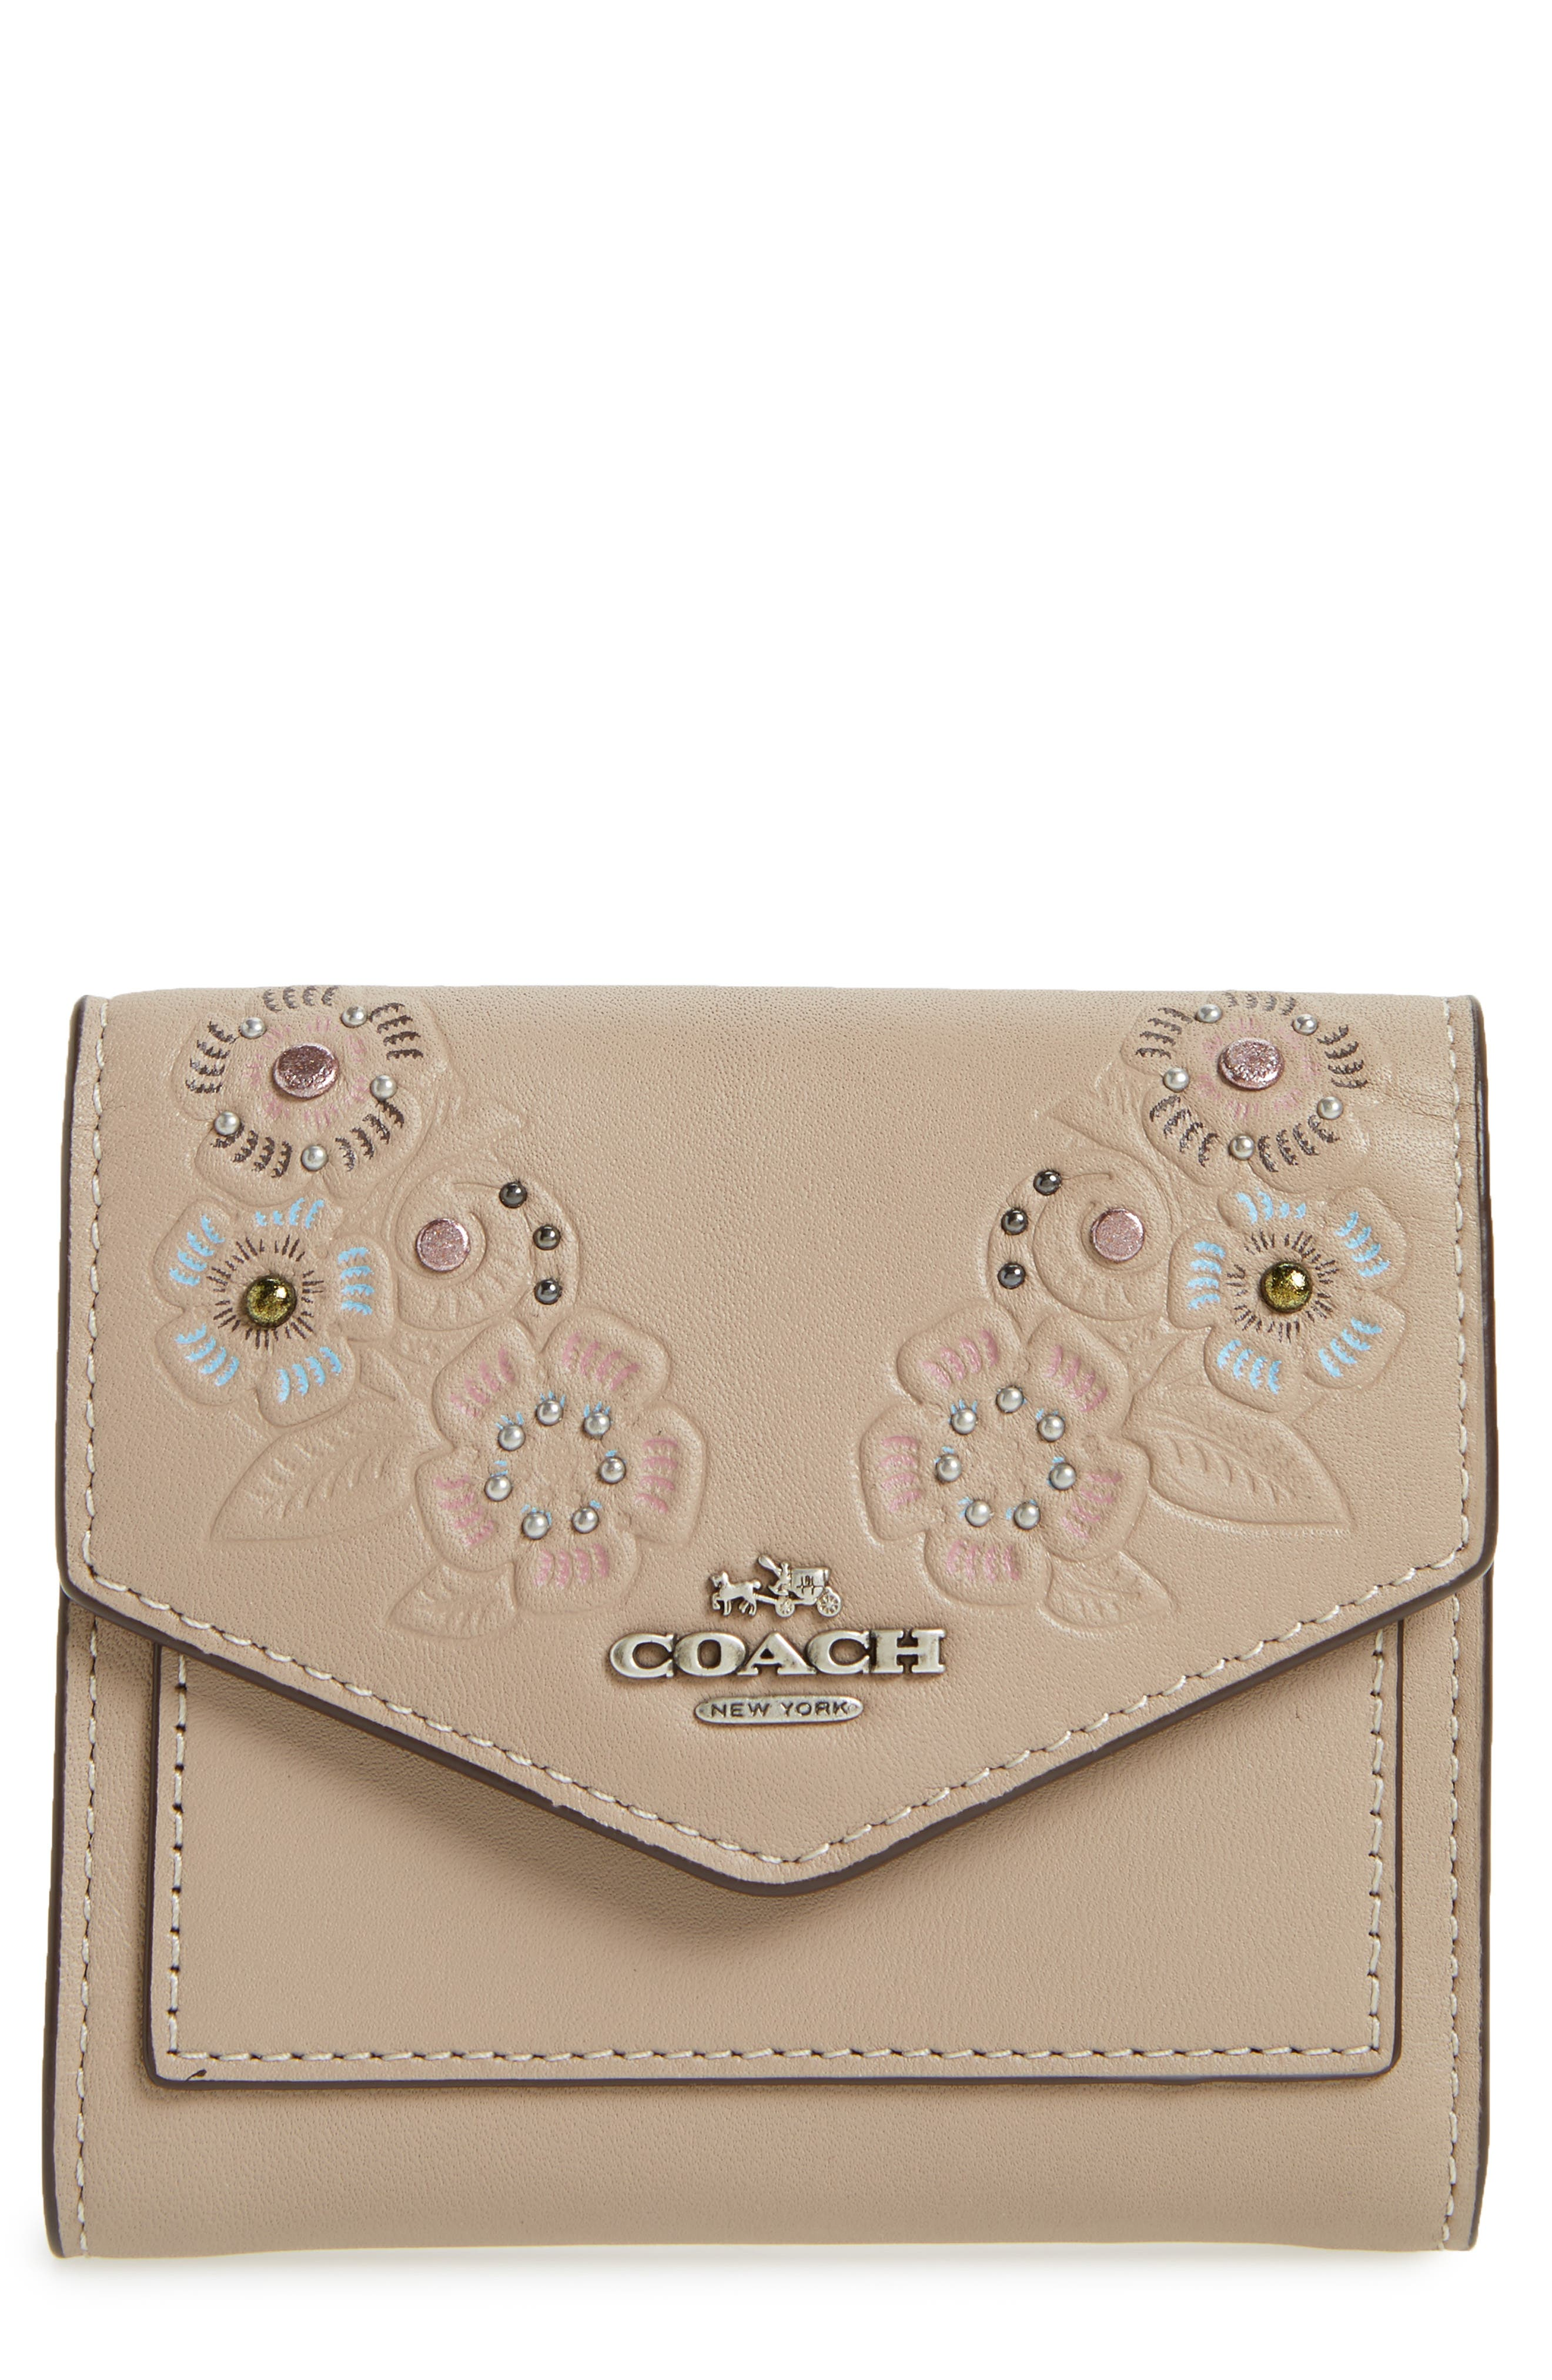 Small Tea Rose Calfskin Leather Trifold Wallet,                             Main thumbnail 1, color,                             020